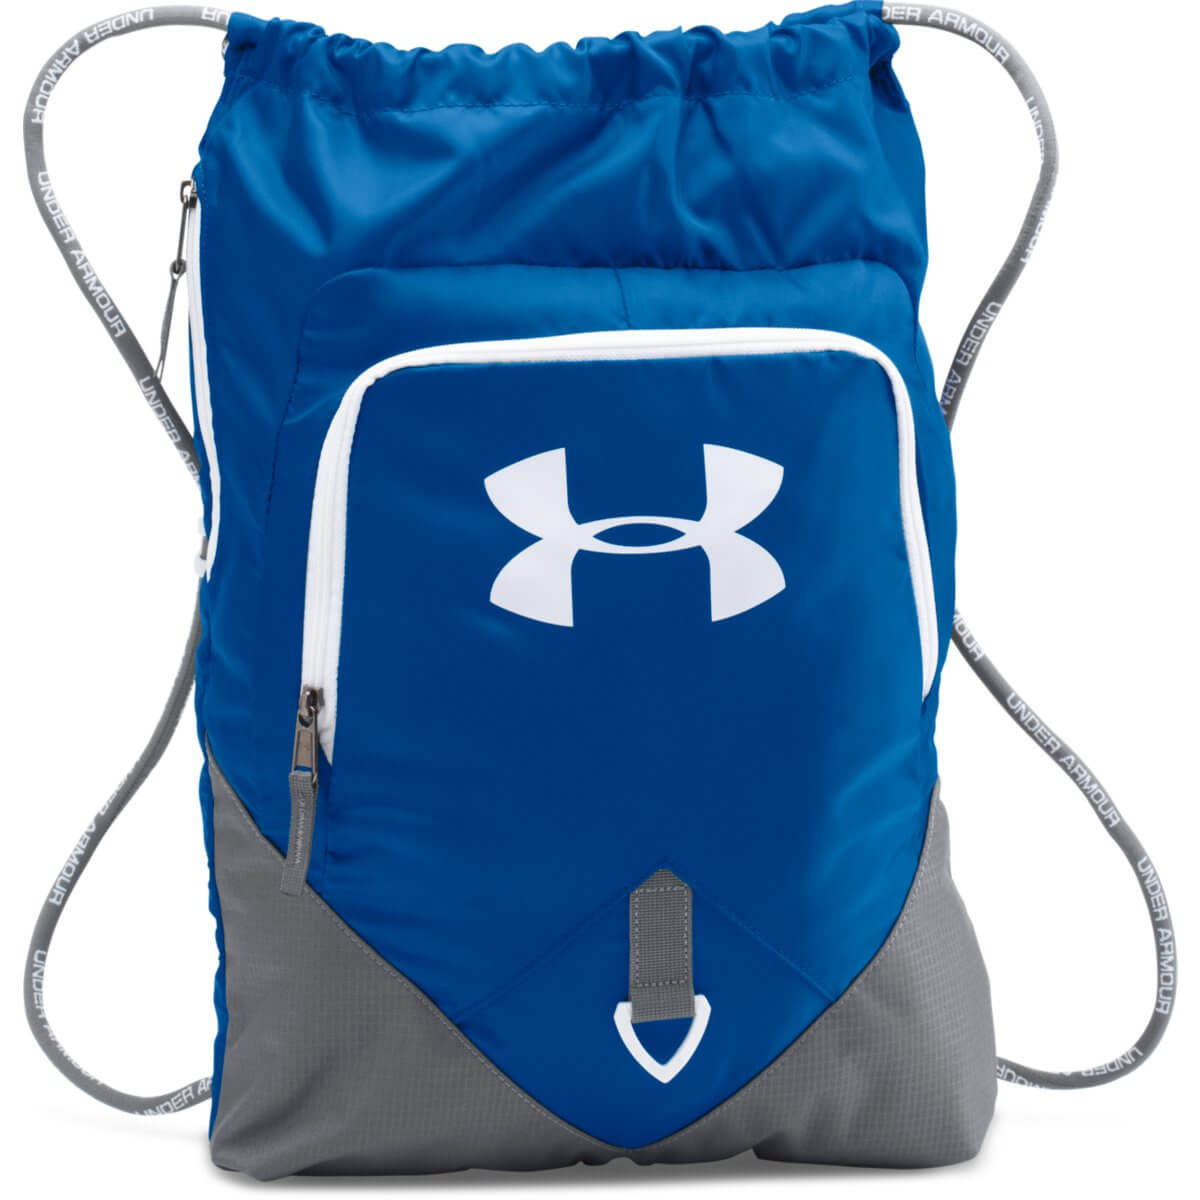 Undeniable Sackpack Blue - Under Armour - Blue